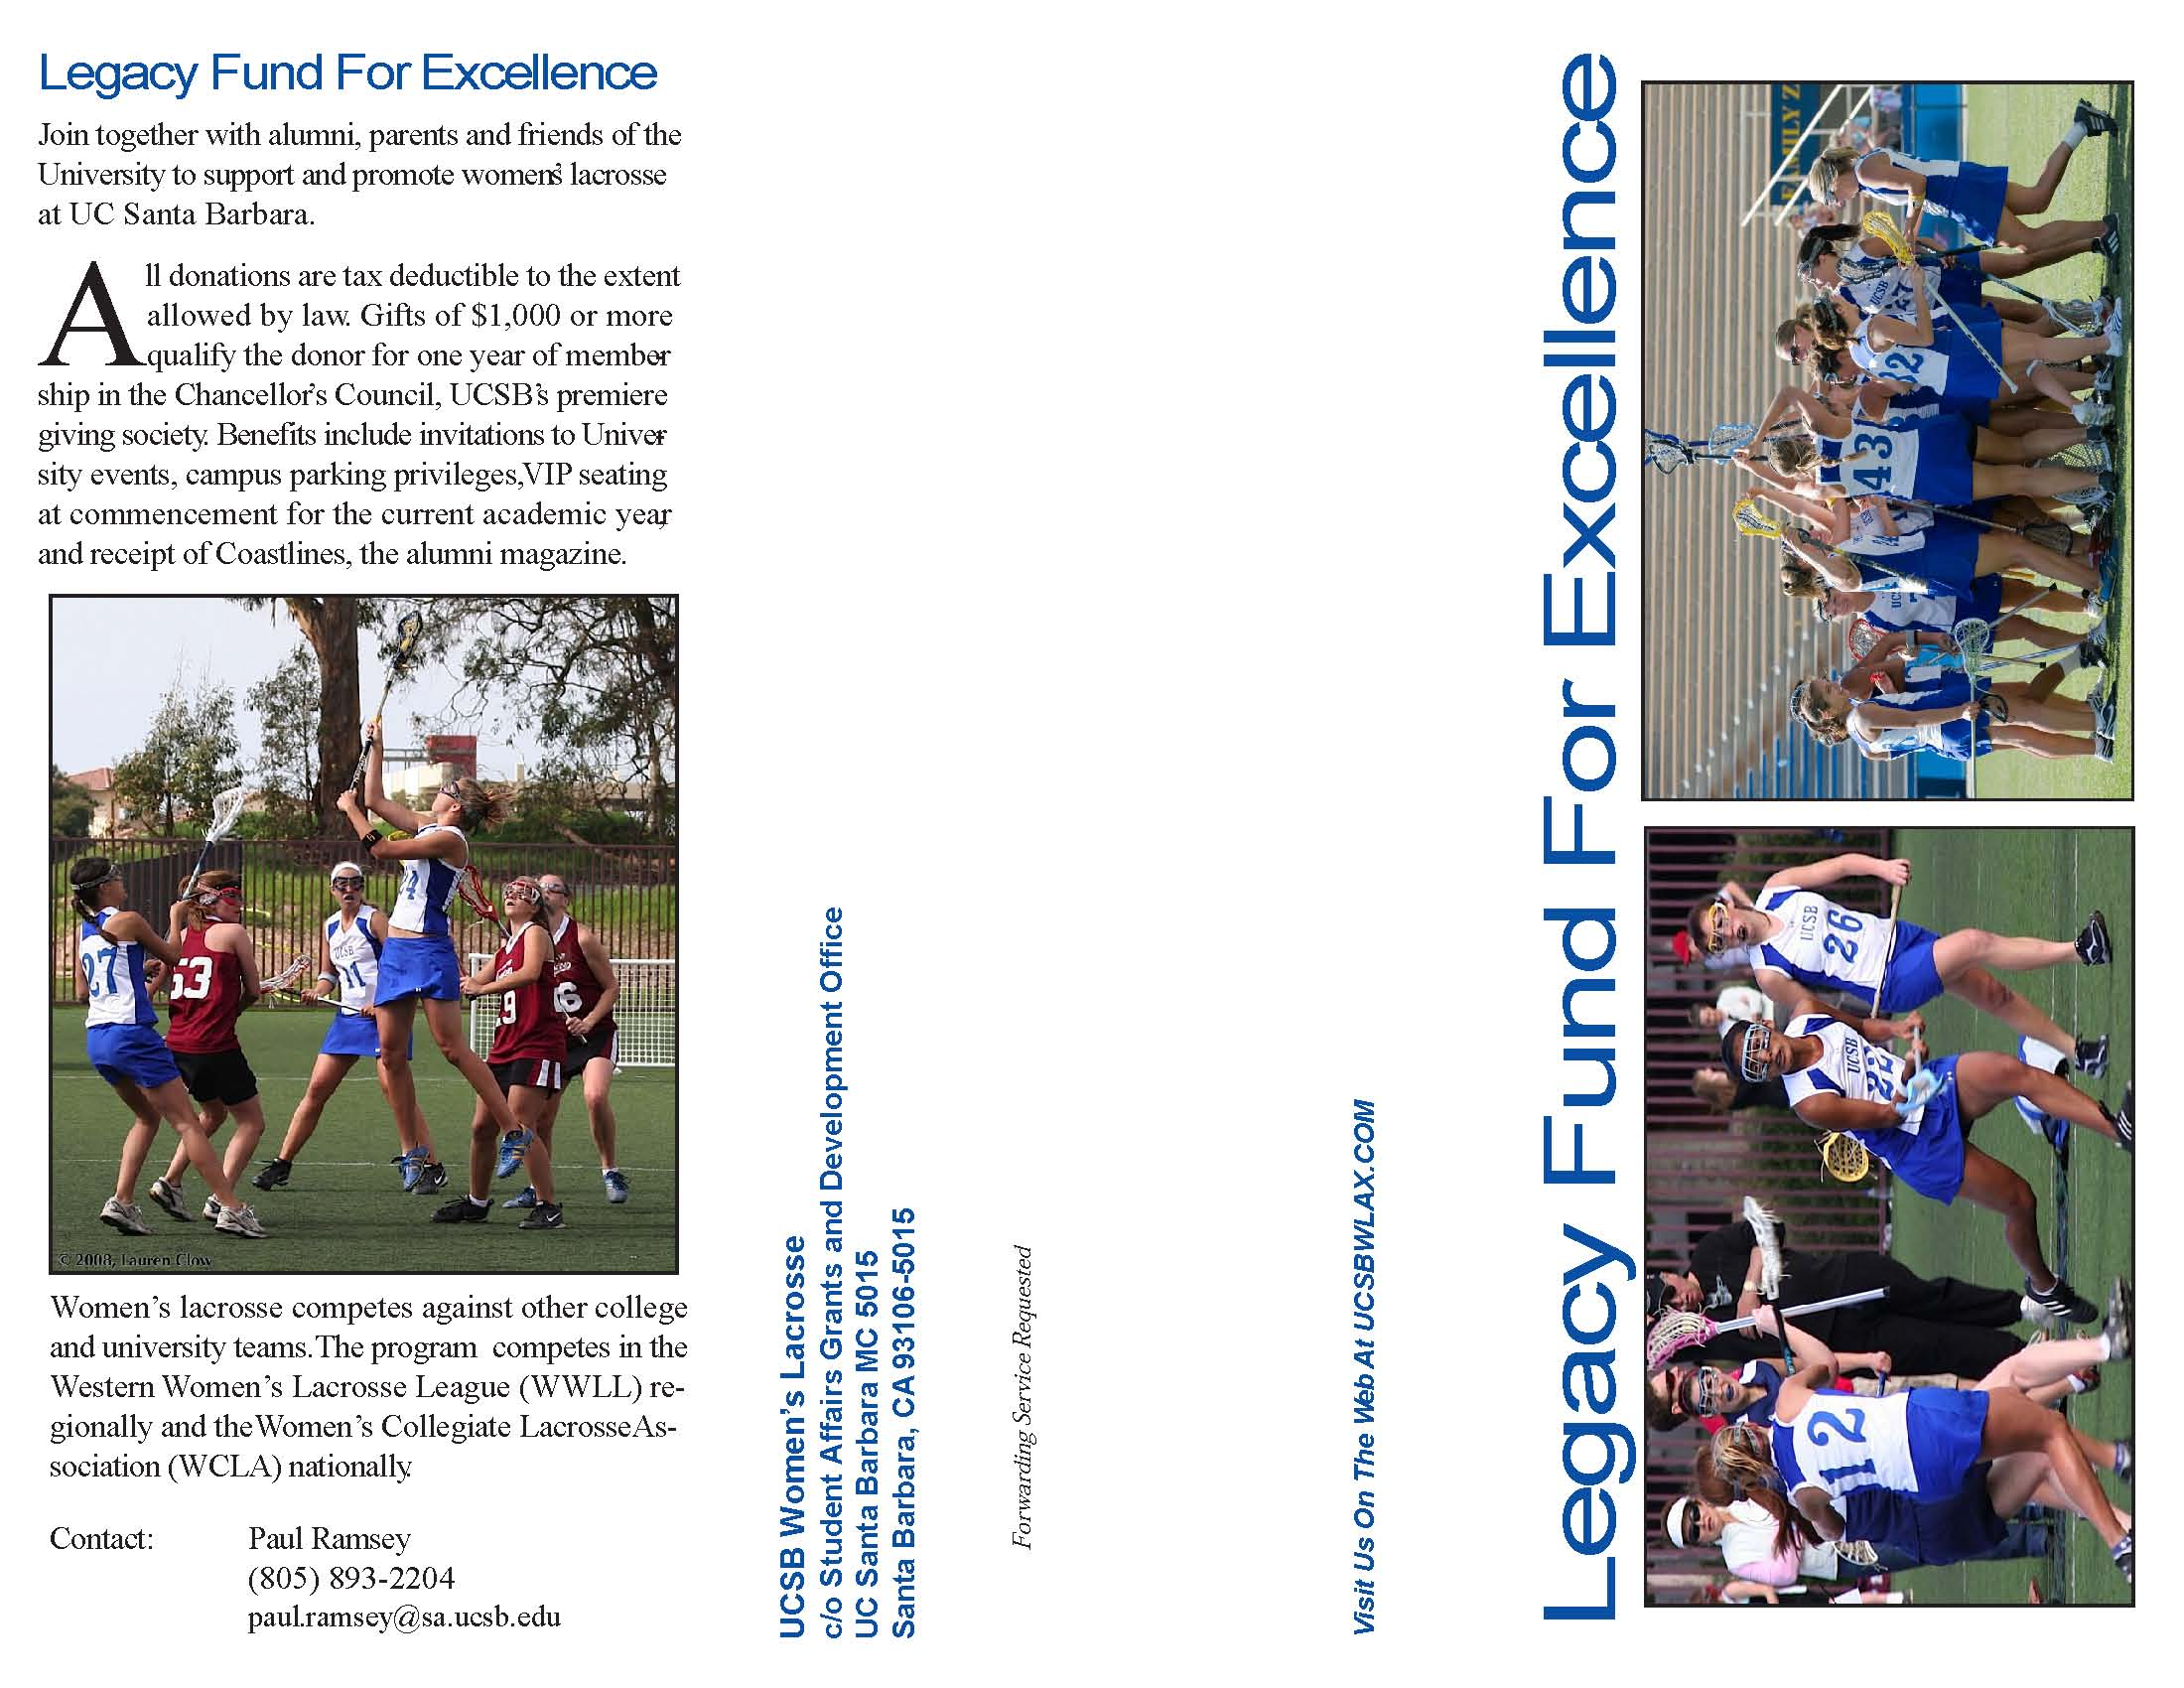 Legacy Fund For Excellence Brochure